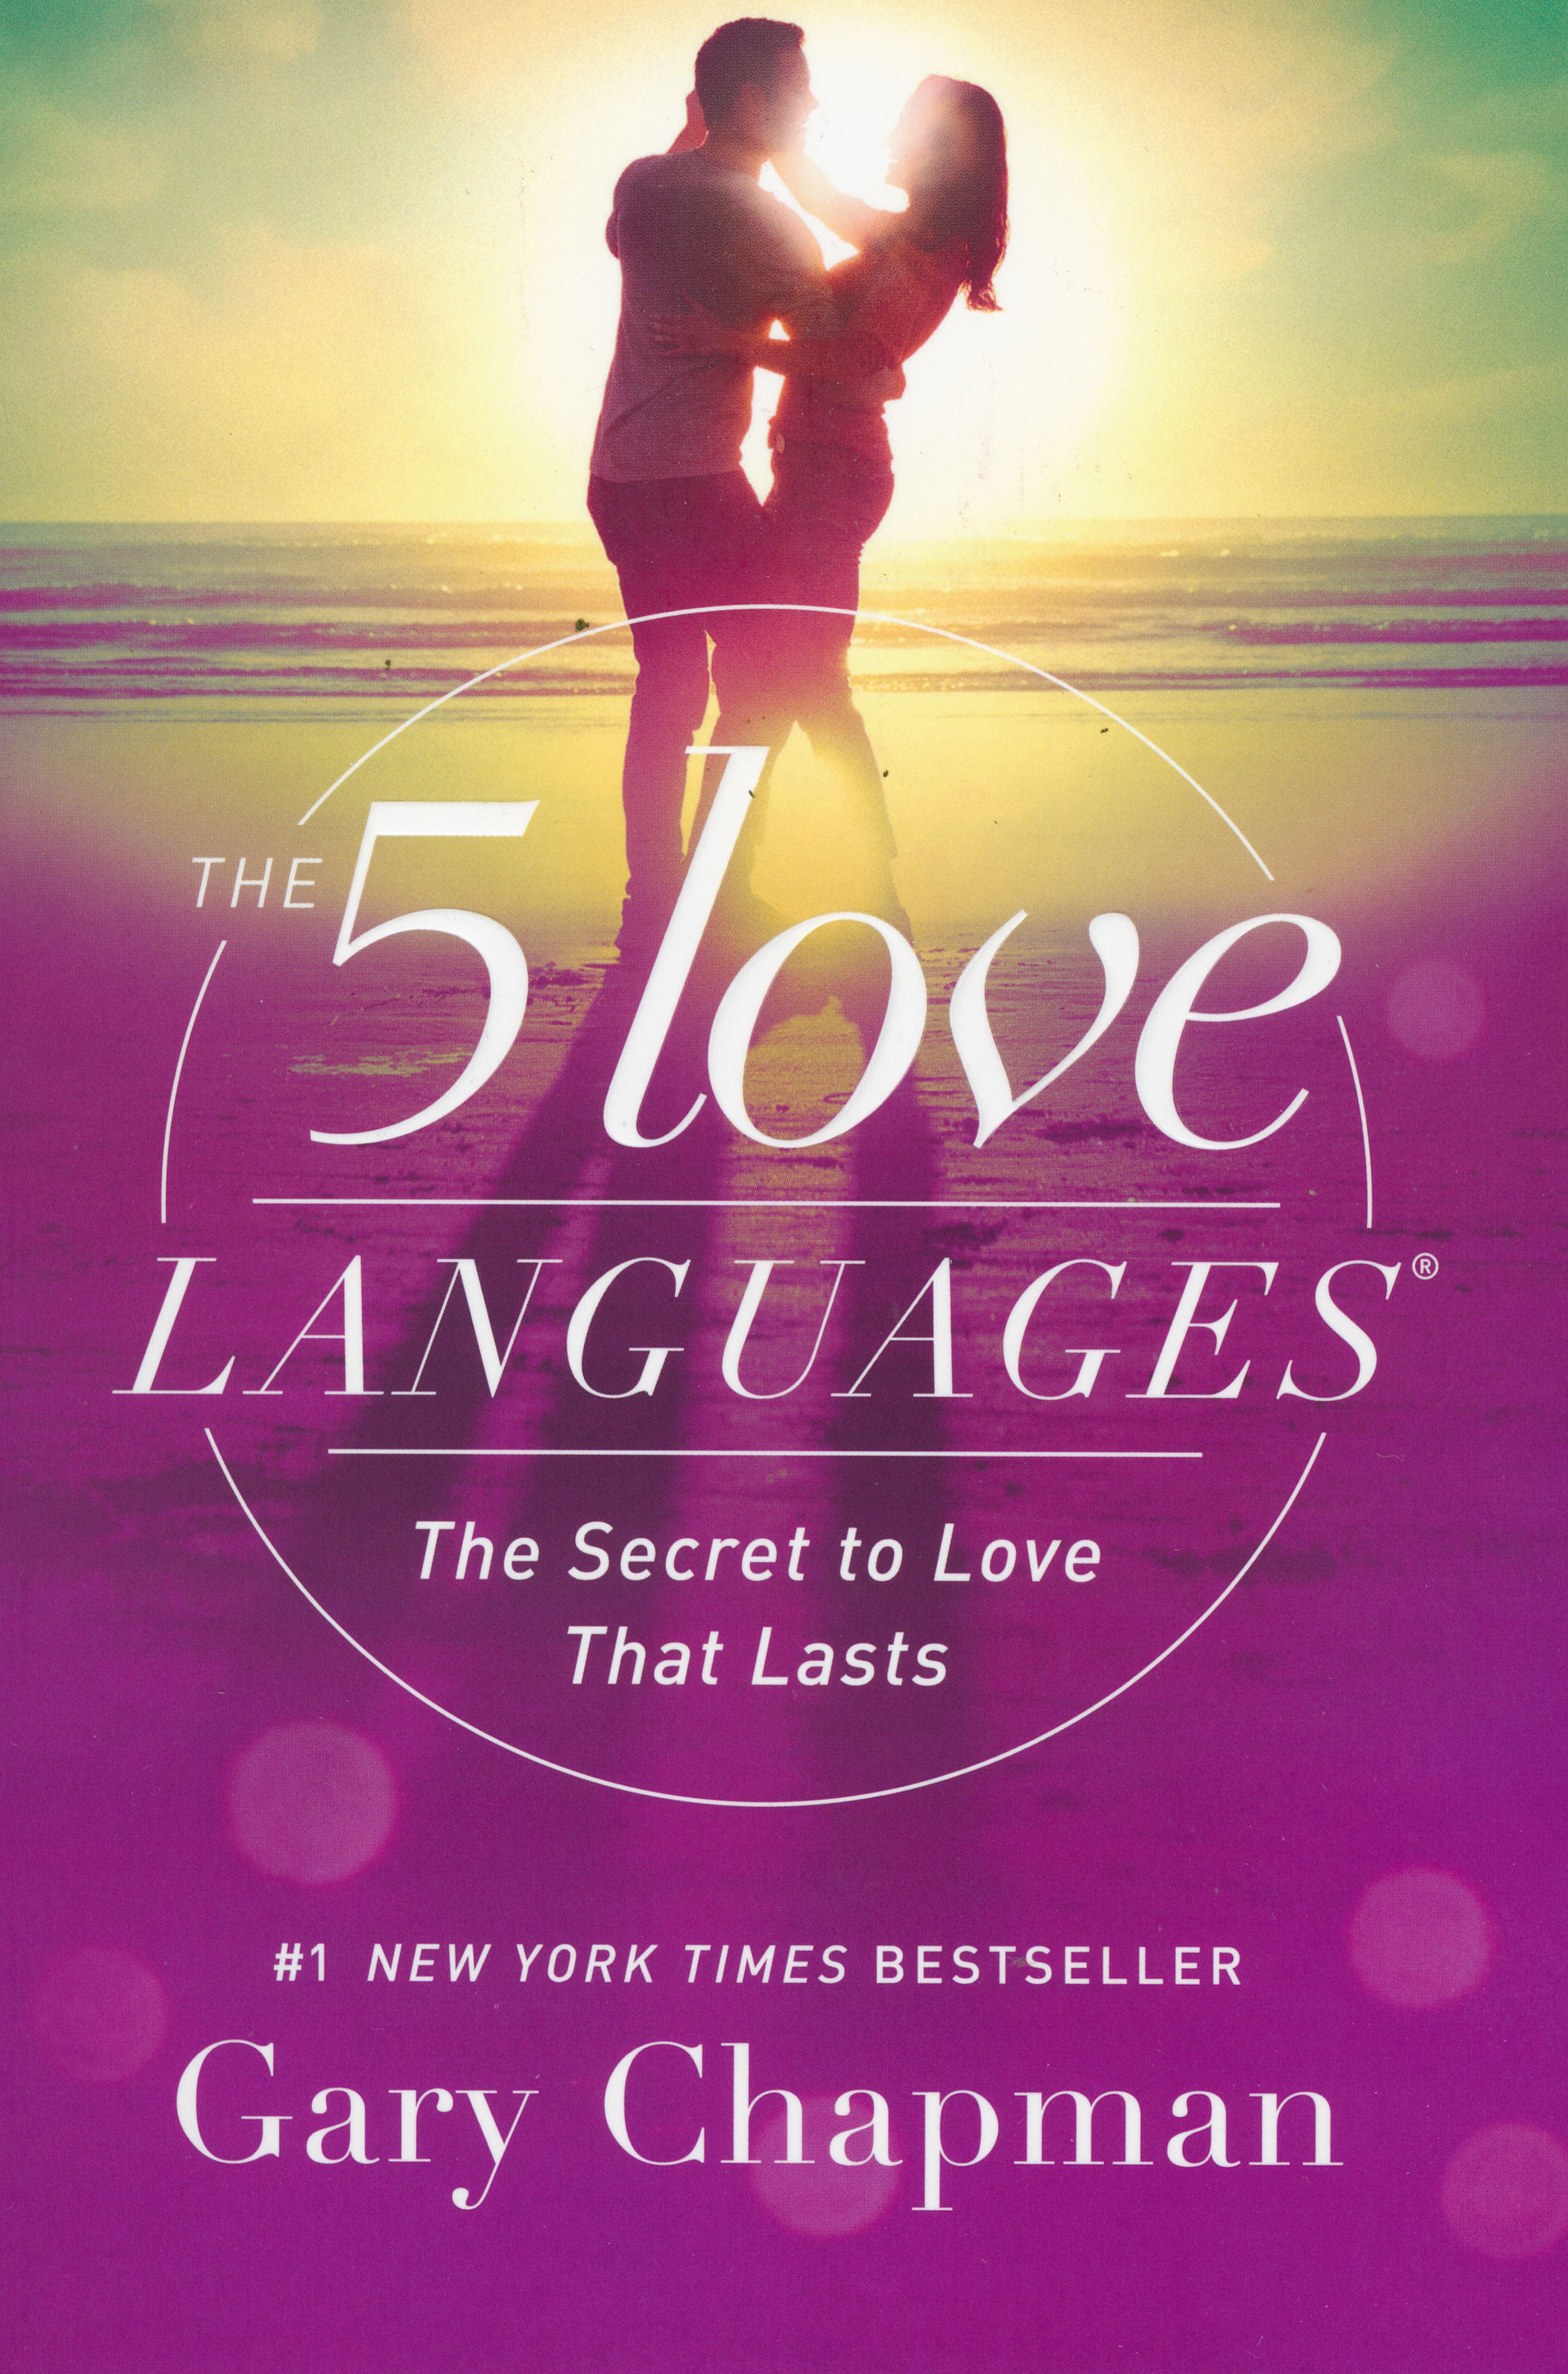 5 Love Languages:The Secret to Love That Lasts by Gary Chapman9780802412706